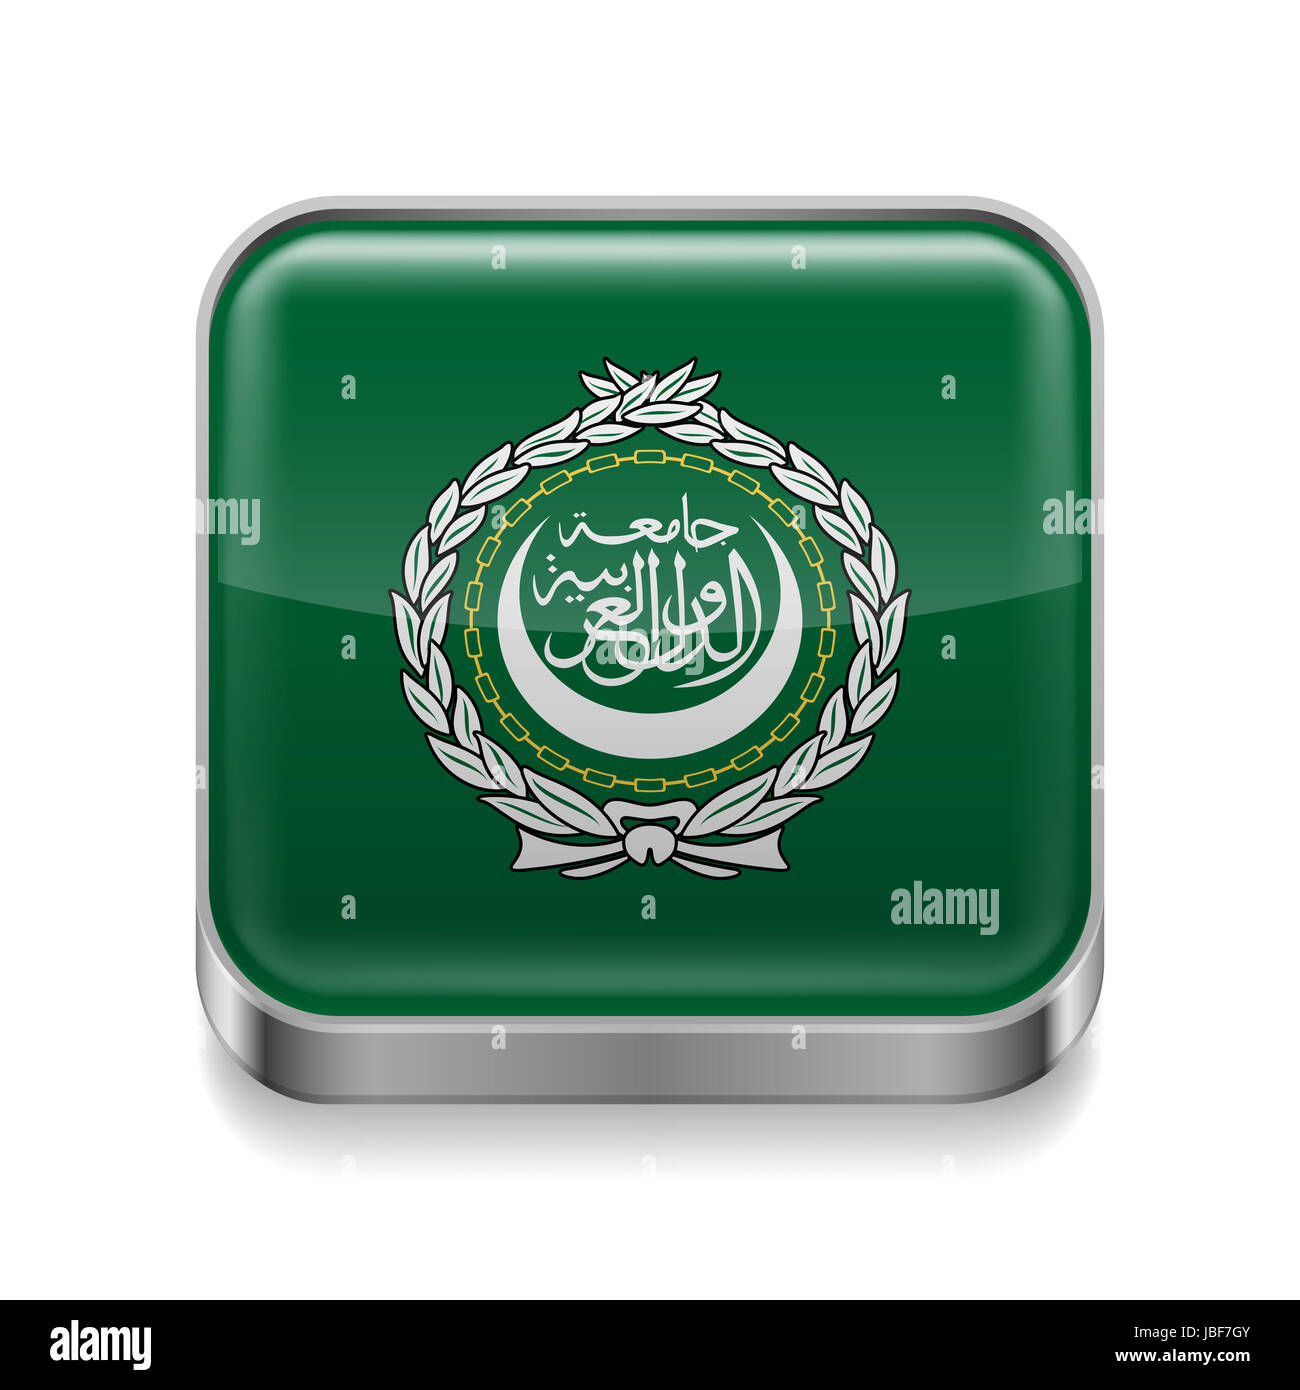 Metal square icon with flag colors of Arab League - Stock Image